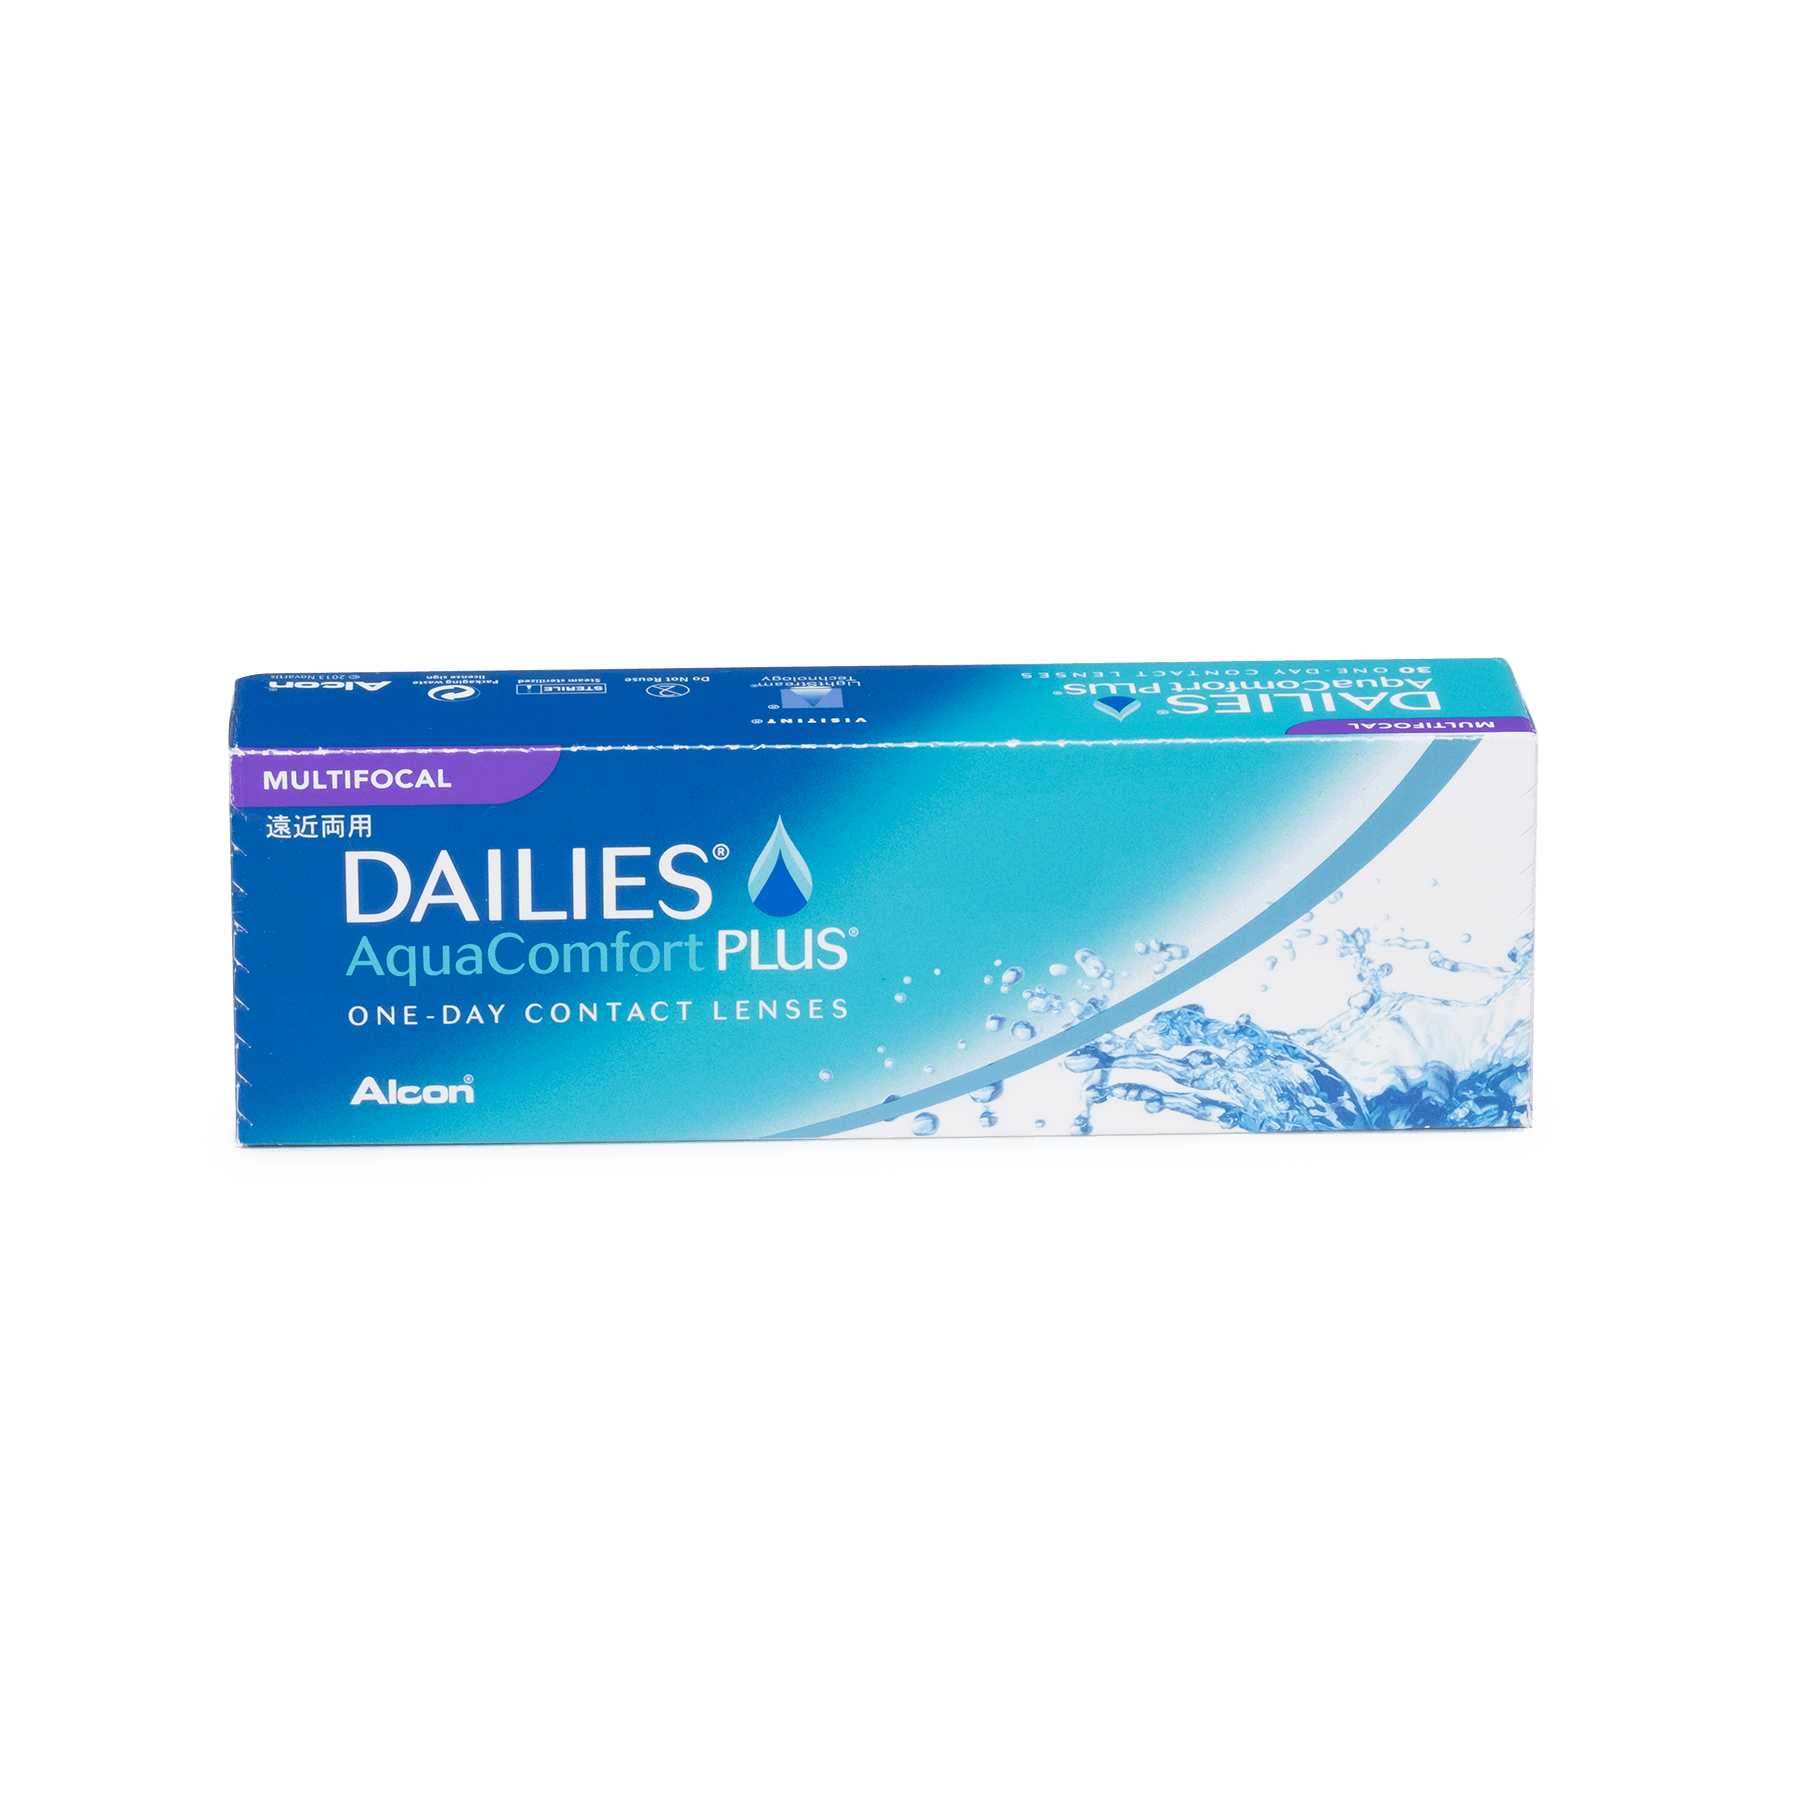 DAILIES AquaComfort Plus Multifocal 30pk*